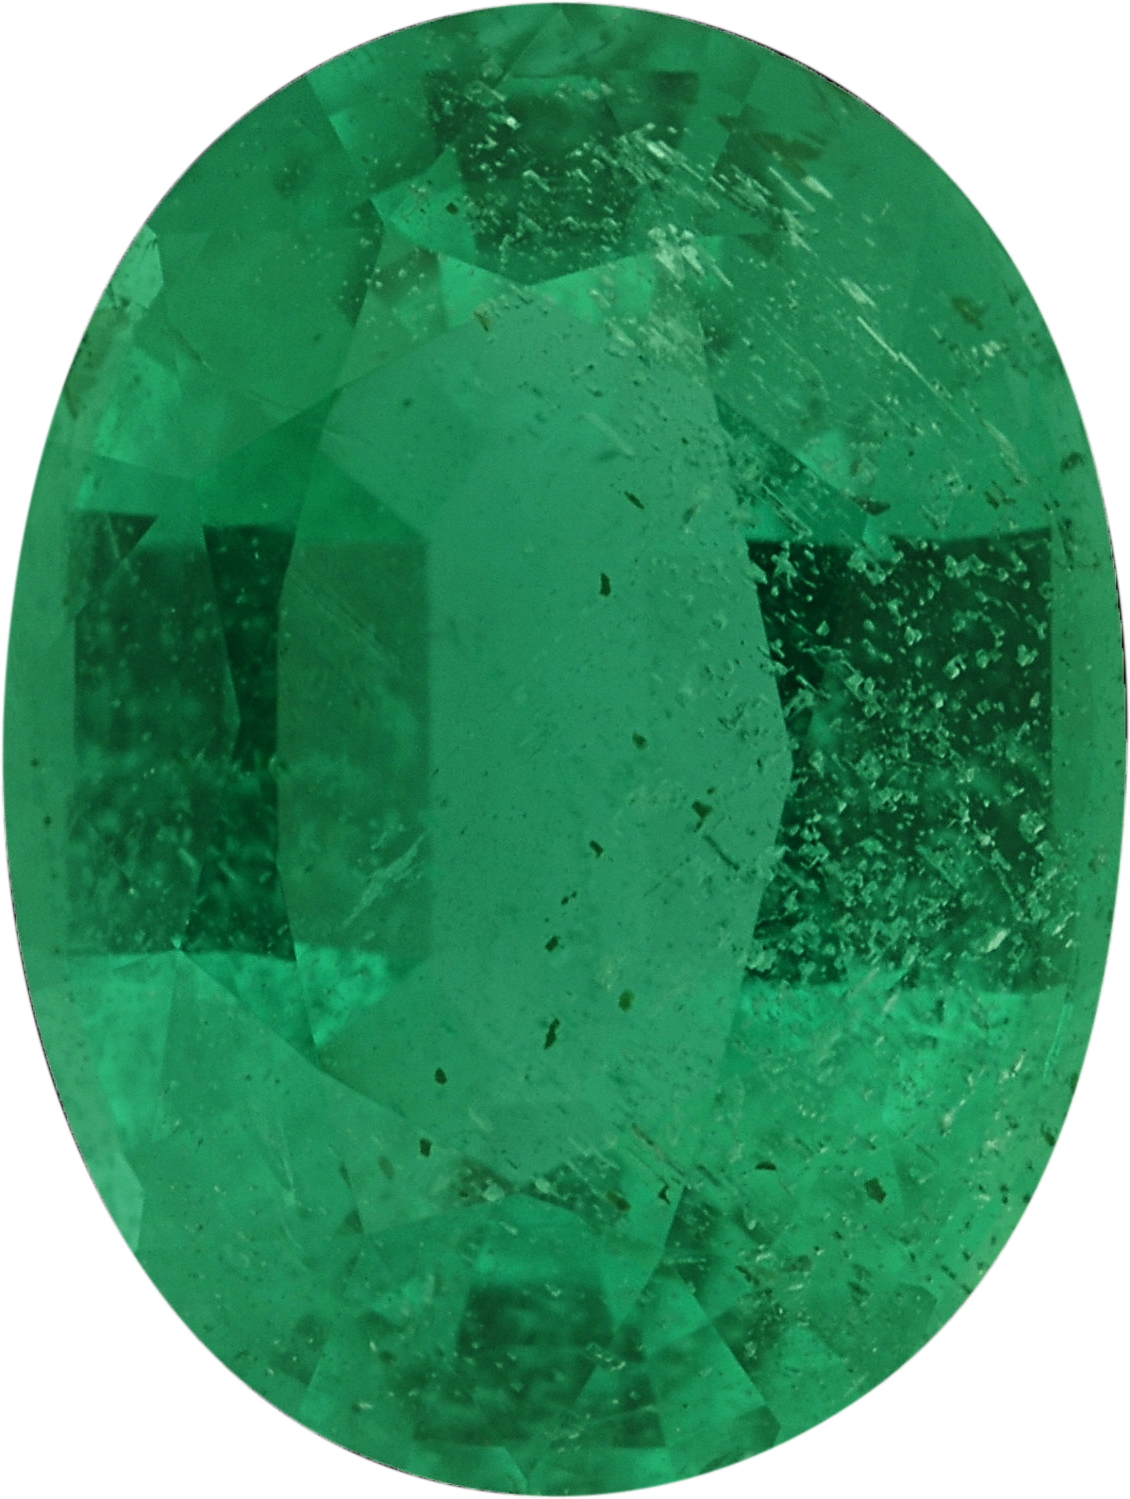 8.13 x 6.13 mm, Emerald Loose Gemstone in Oval Cut, 1.21 carats